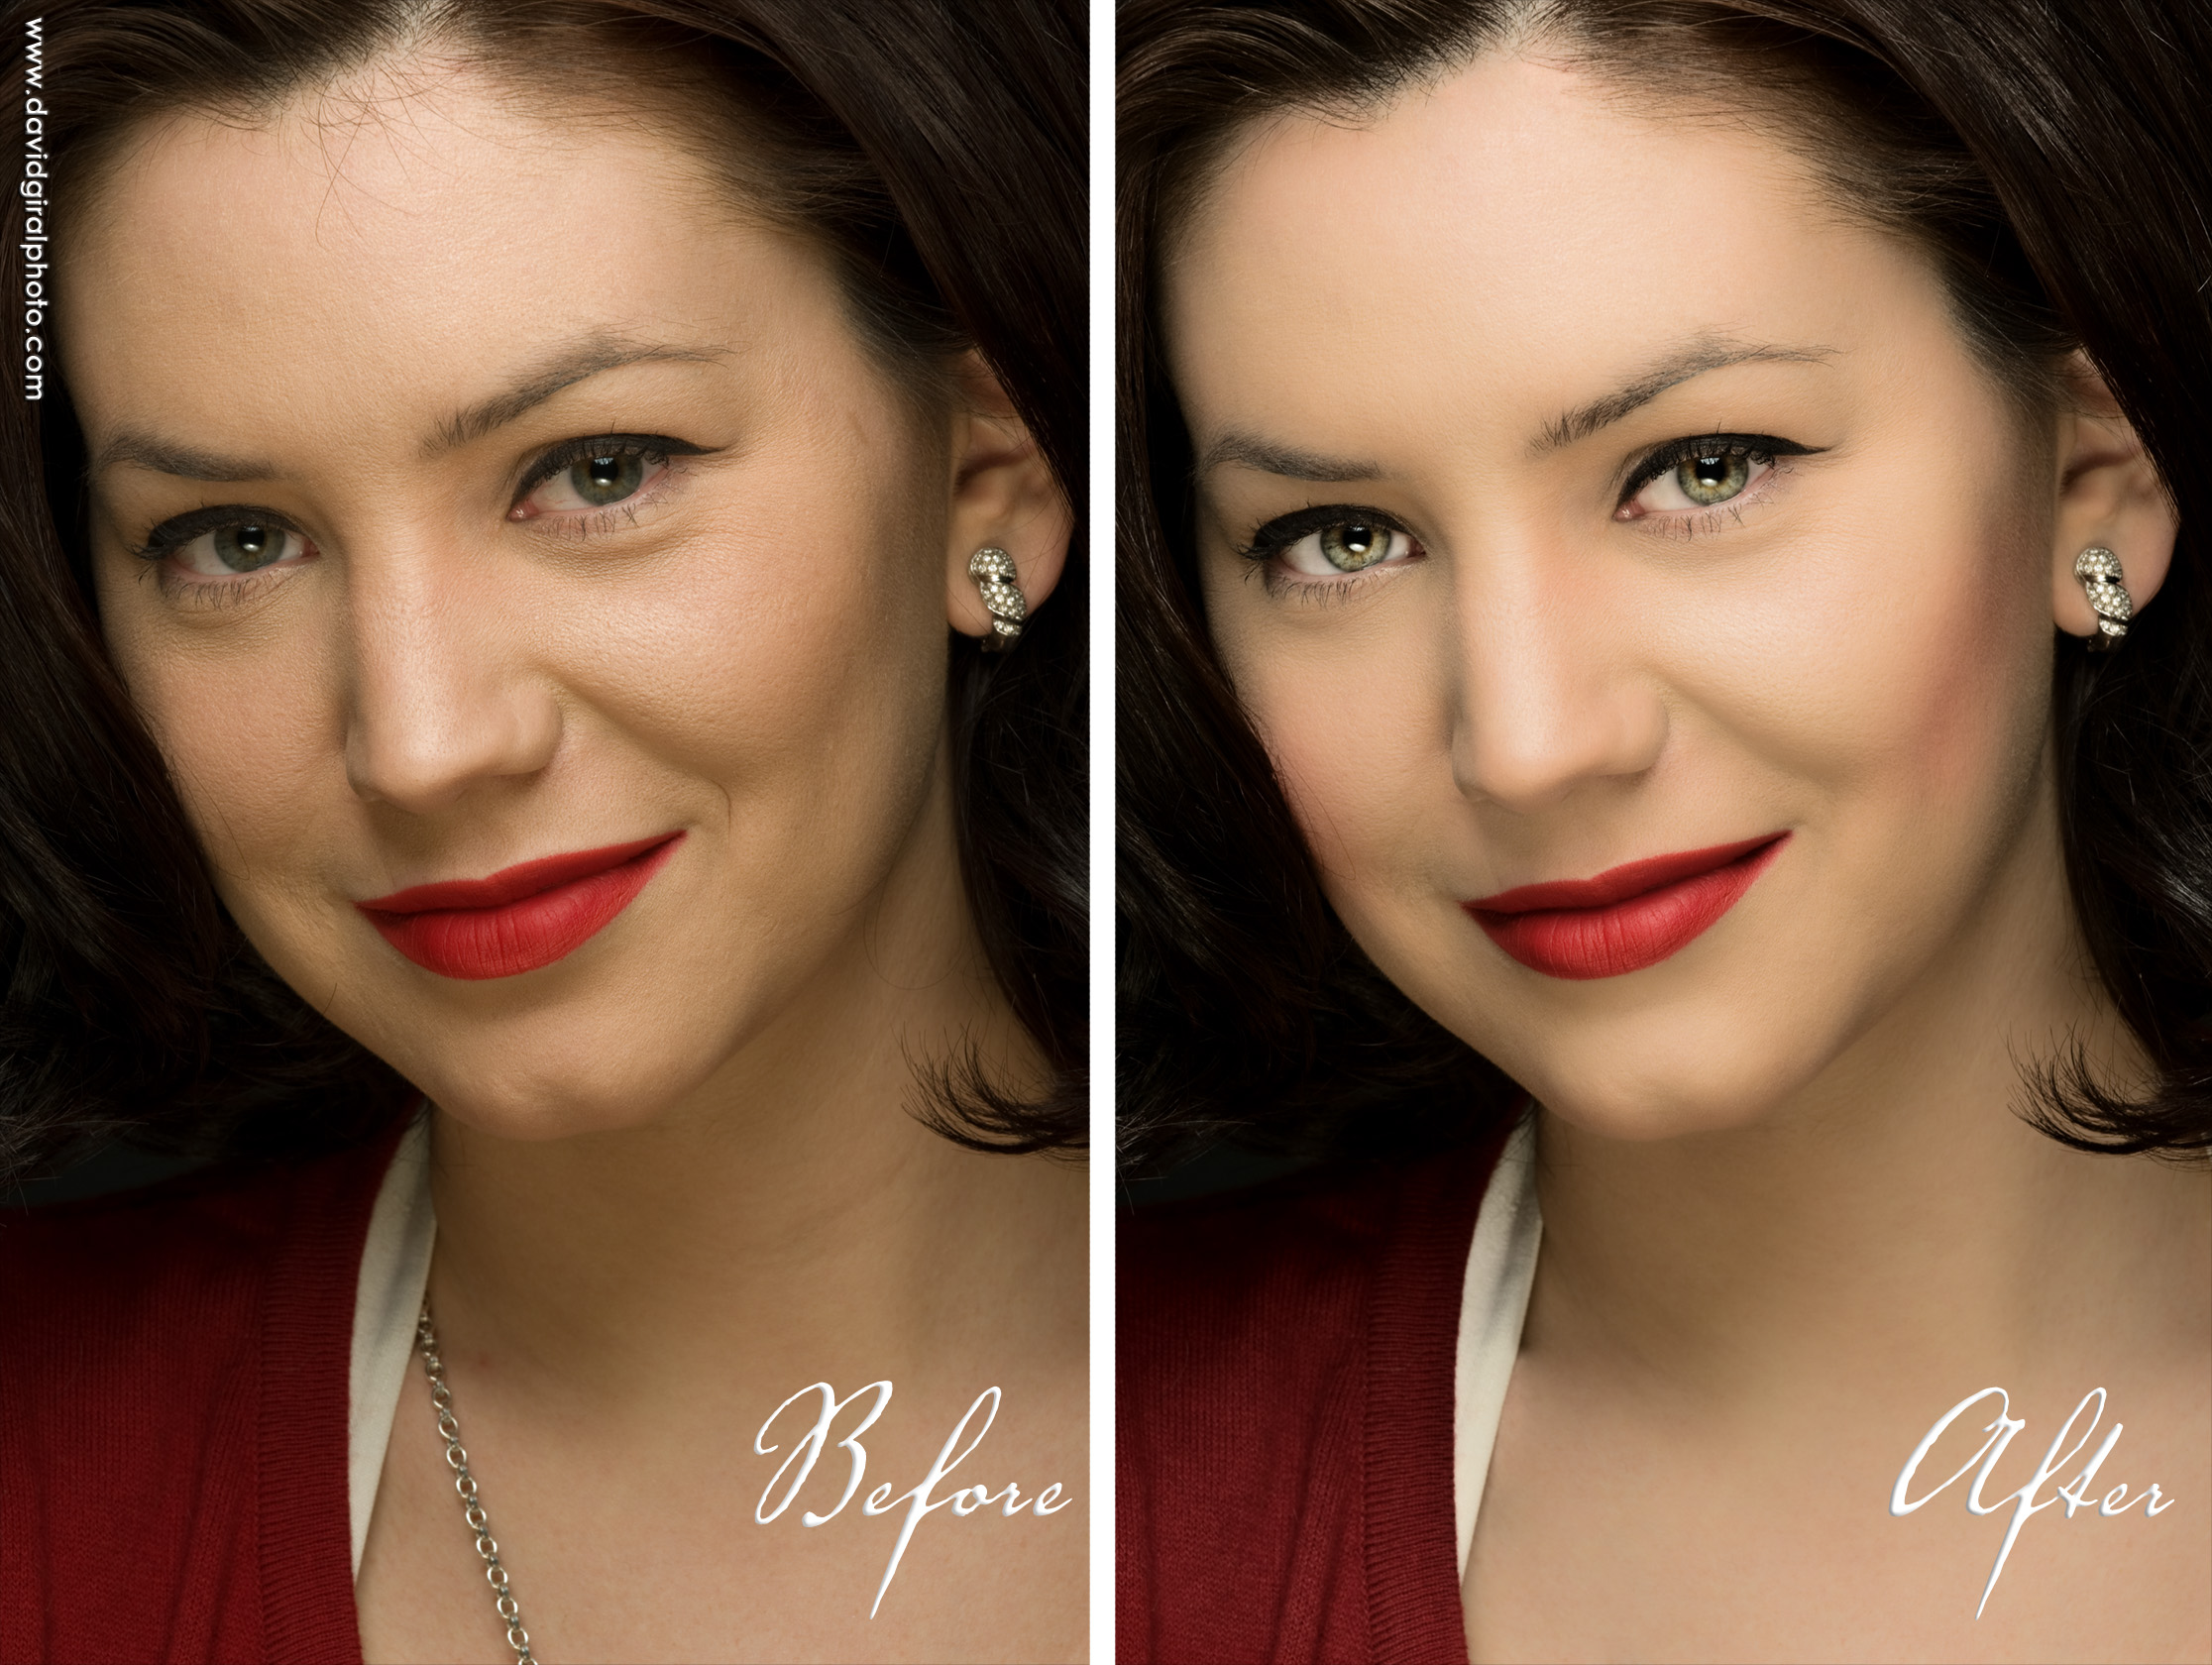 Photoshop Makeover: Fashionista514s Headshot